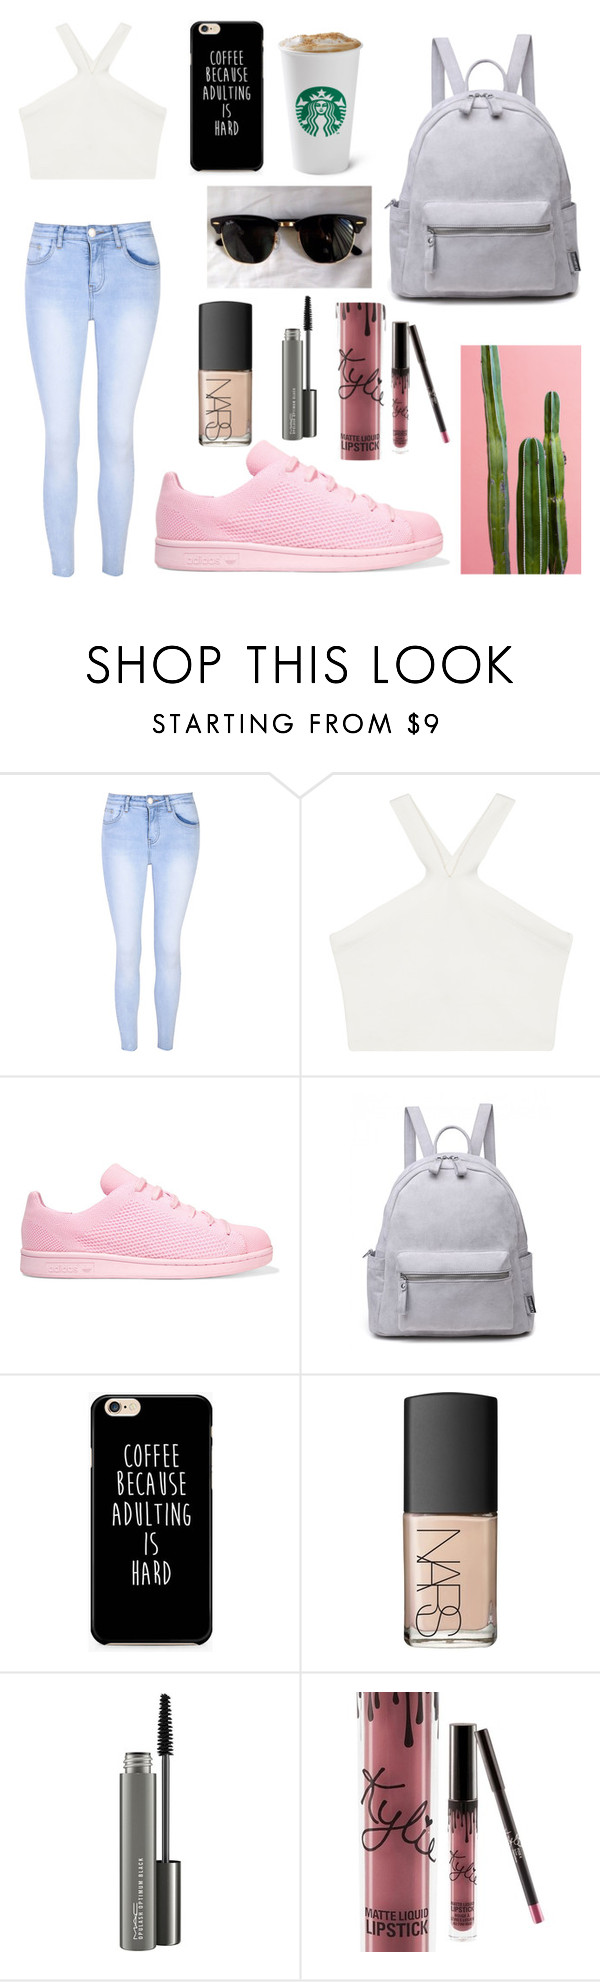 """""""yeah, baby"""" by glcot on Polyvore featuring Glamorous, BCBGMAXAZRIA, adidas Originals, Ray-Ban, NARS Cosmetics, MAC Cosmetics and Kylie Cosmetics"""